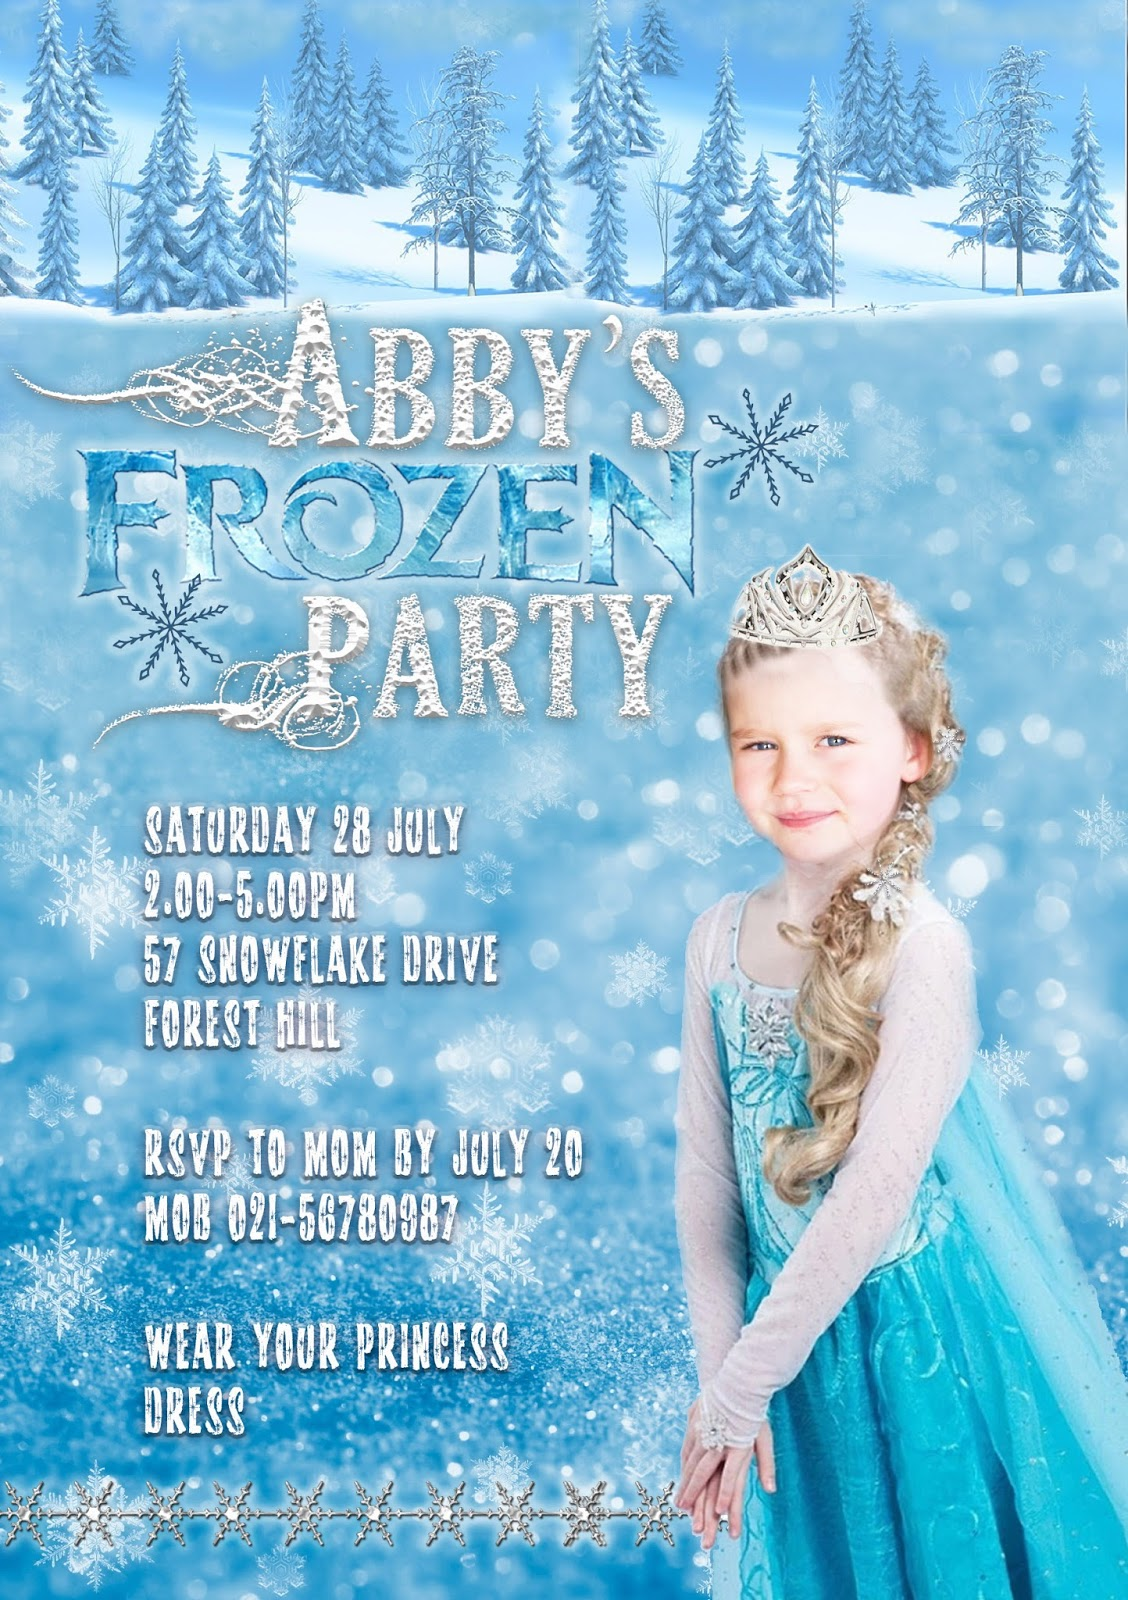 FREE Kids Party Invitations – Party Invitations Frozen